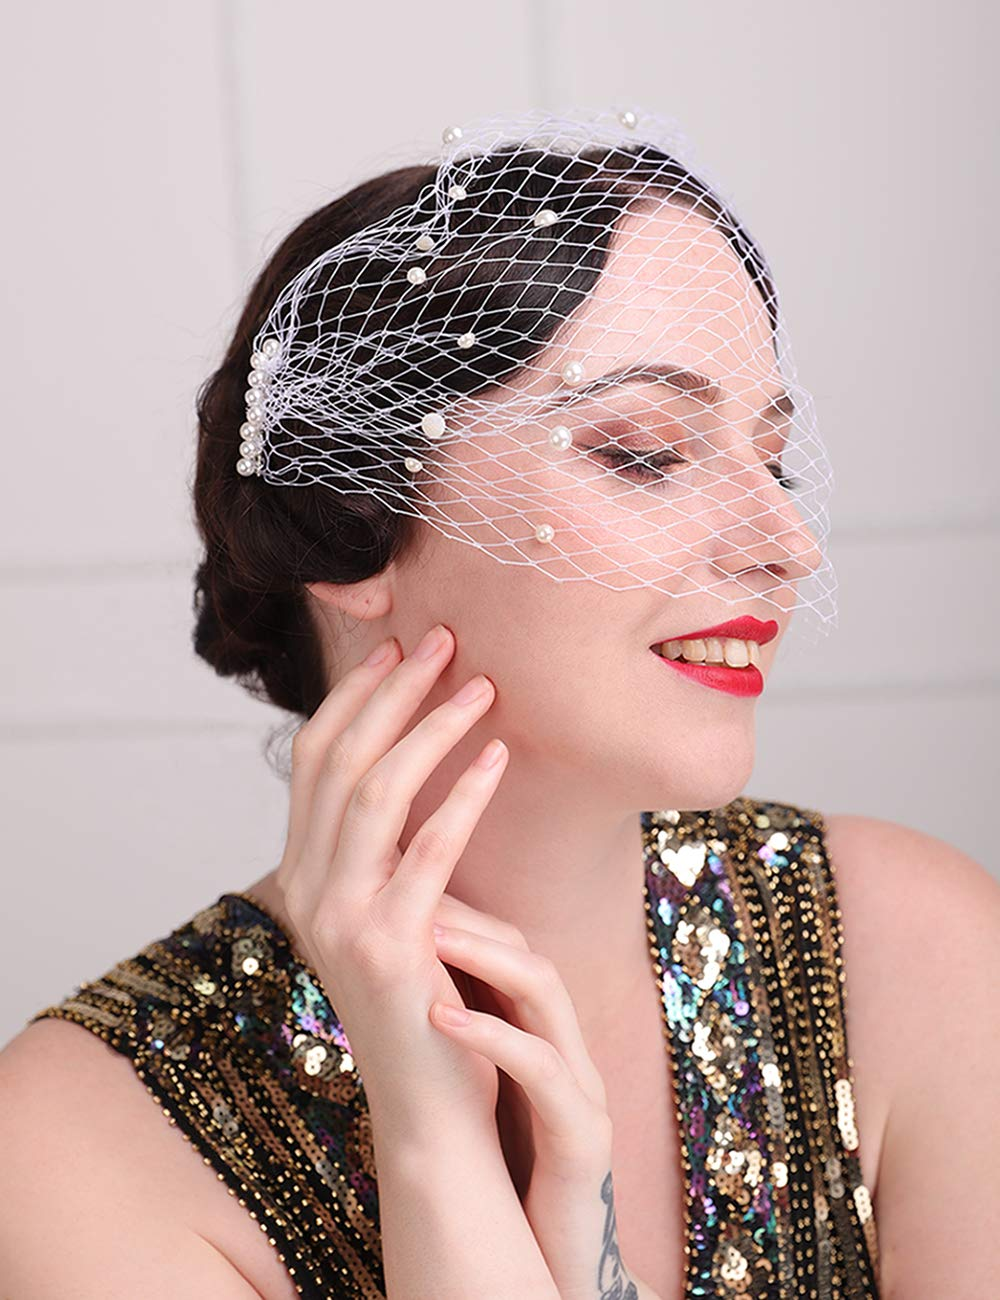 Aimimier Bridal Short Veil with Beaded Comb Champagne 1920s Flapper Fascinator Mesh Veil Single-layered Birdcage Veil for Wedding